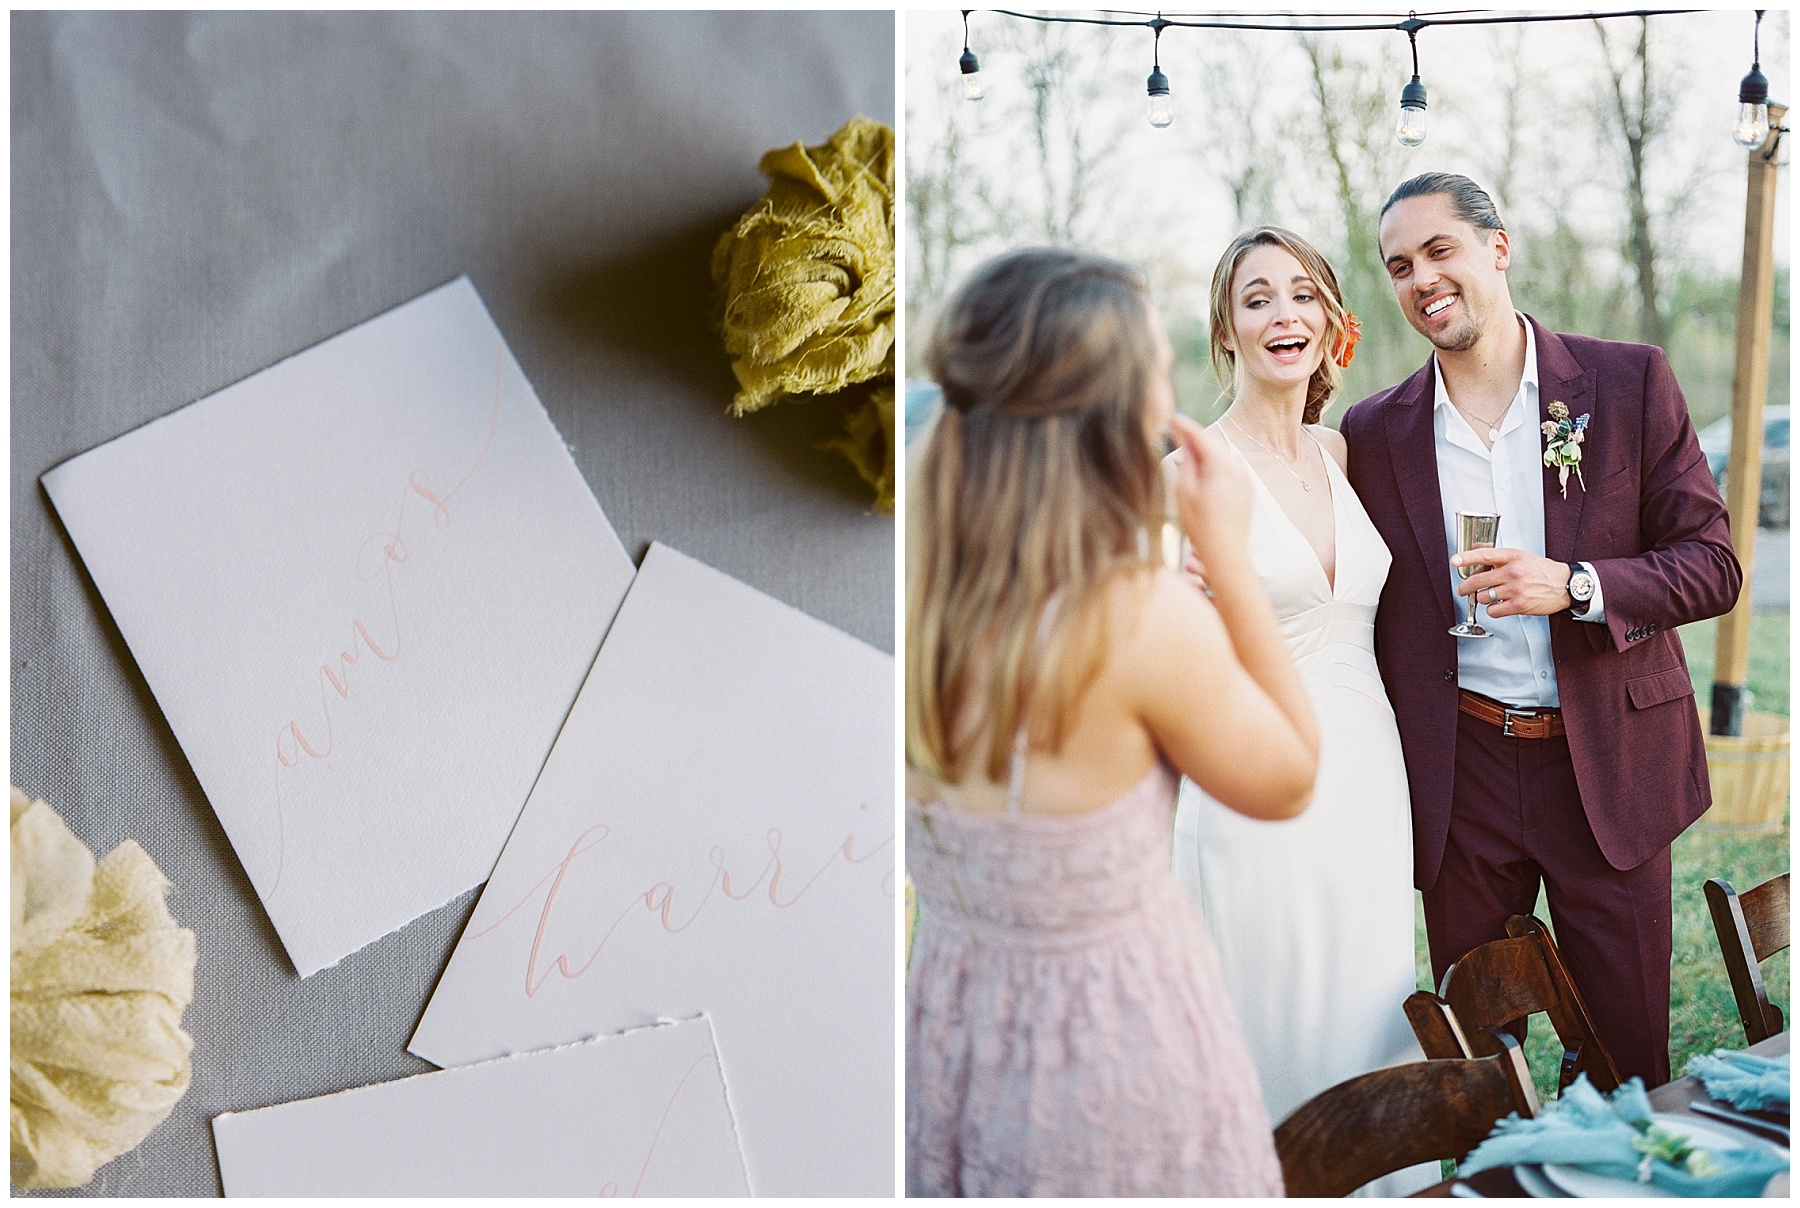 Intimate Spanish and French Inspired Destination Wedding with Lakeside Dinner Party at Dusk at Wildcliff by Kelsi Kliethermes Photography Best Missouri and Maui Wedding Photographer_0020.jpg